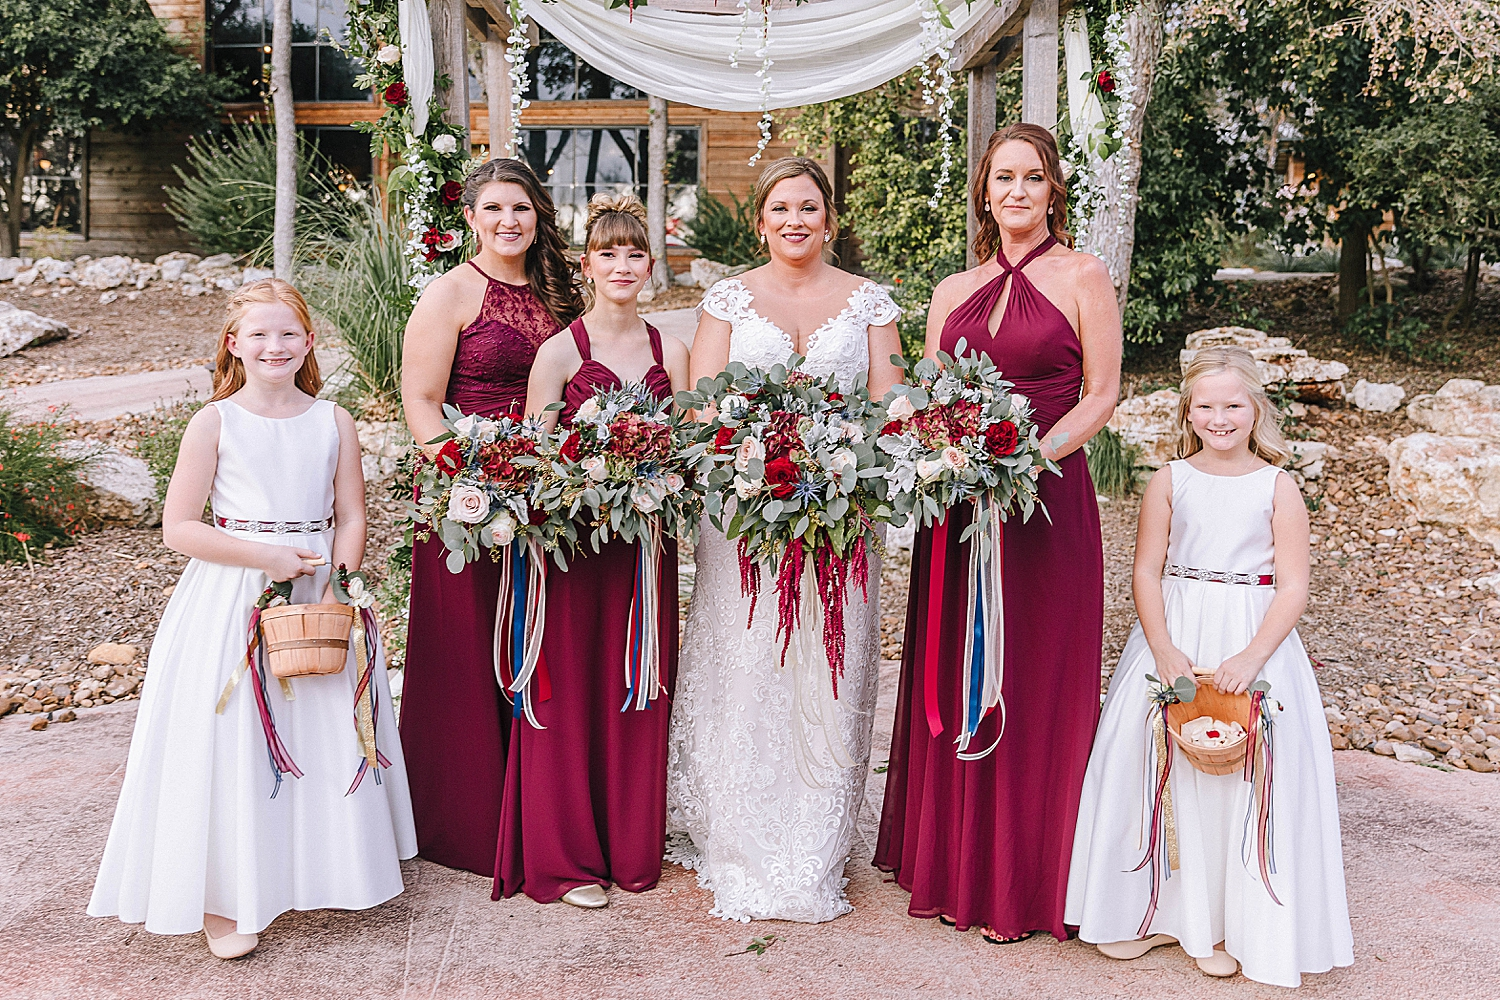 Geronimo-Oaks-Wedding-Venue-Seguin-Texas-Elegant-Navy-Burgundy-Wedding-Carly-Barton-Photography_0034.jpg